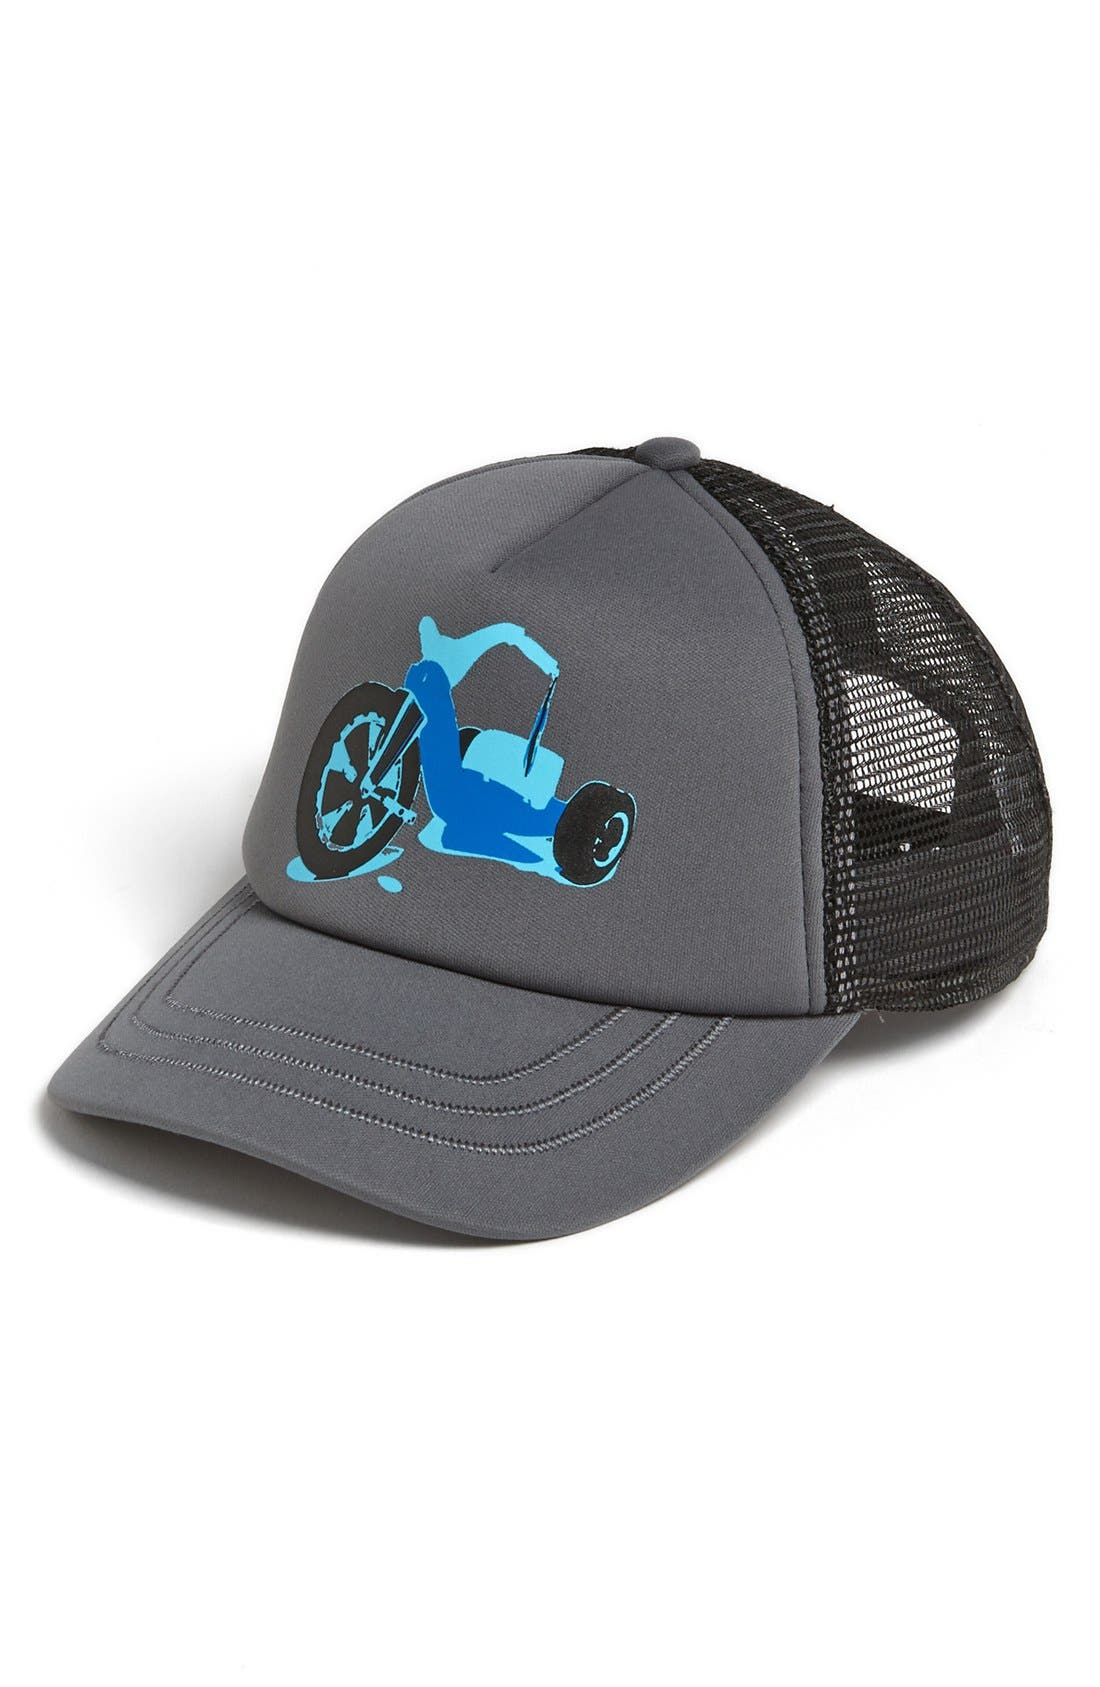 Alternate Image 1 Selected - San Diego Hat 'Trucker' Hat (Baby)